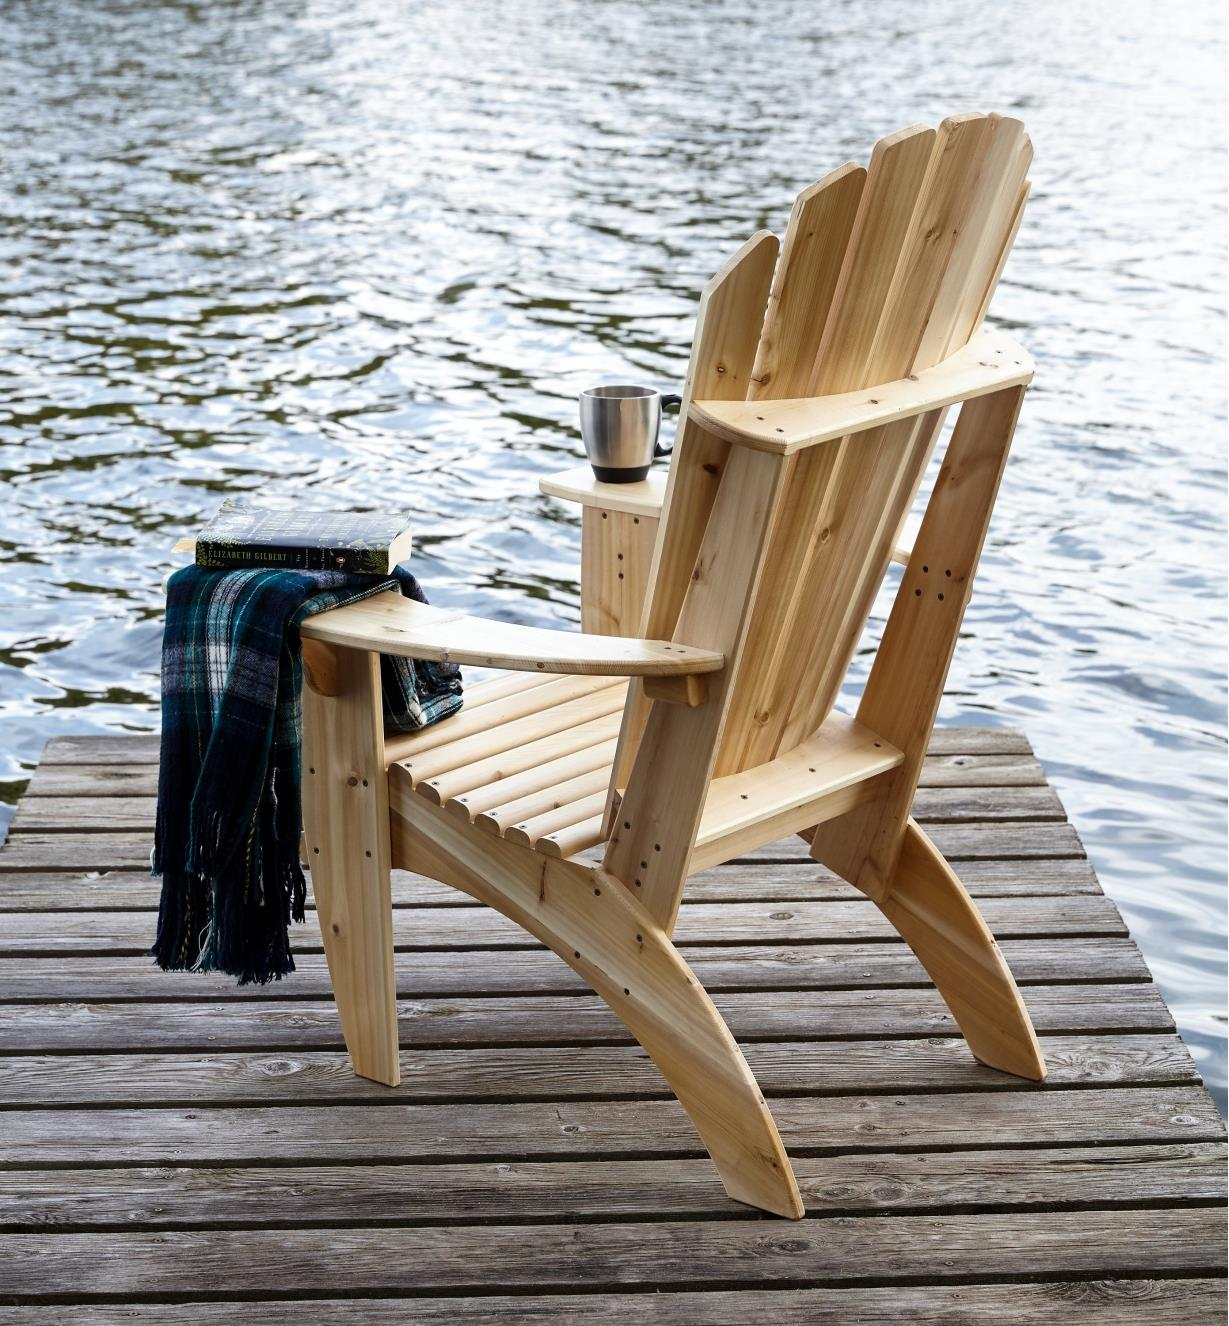 Back view of completed Kitchisippi Chair sitting on a dock